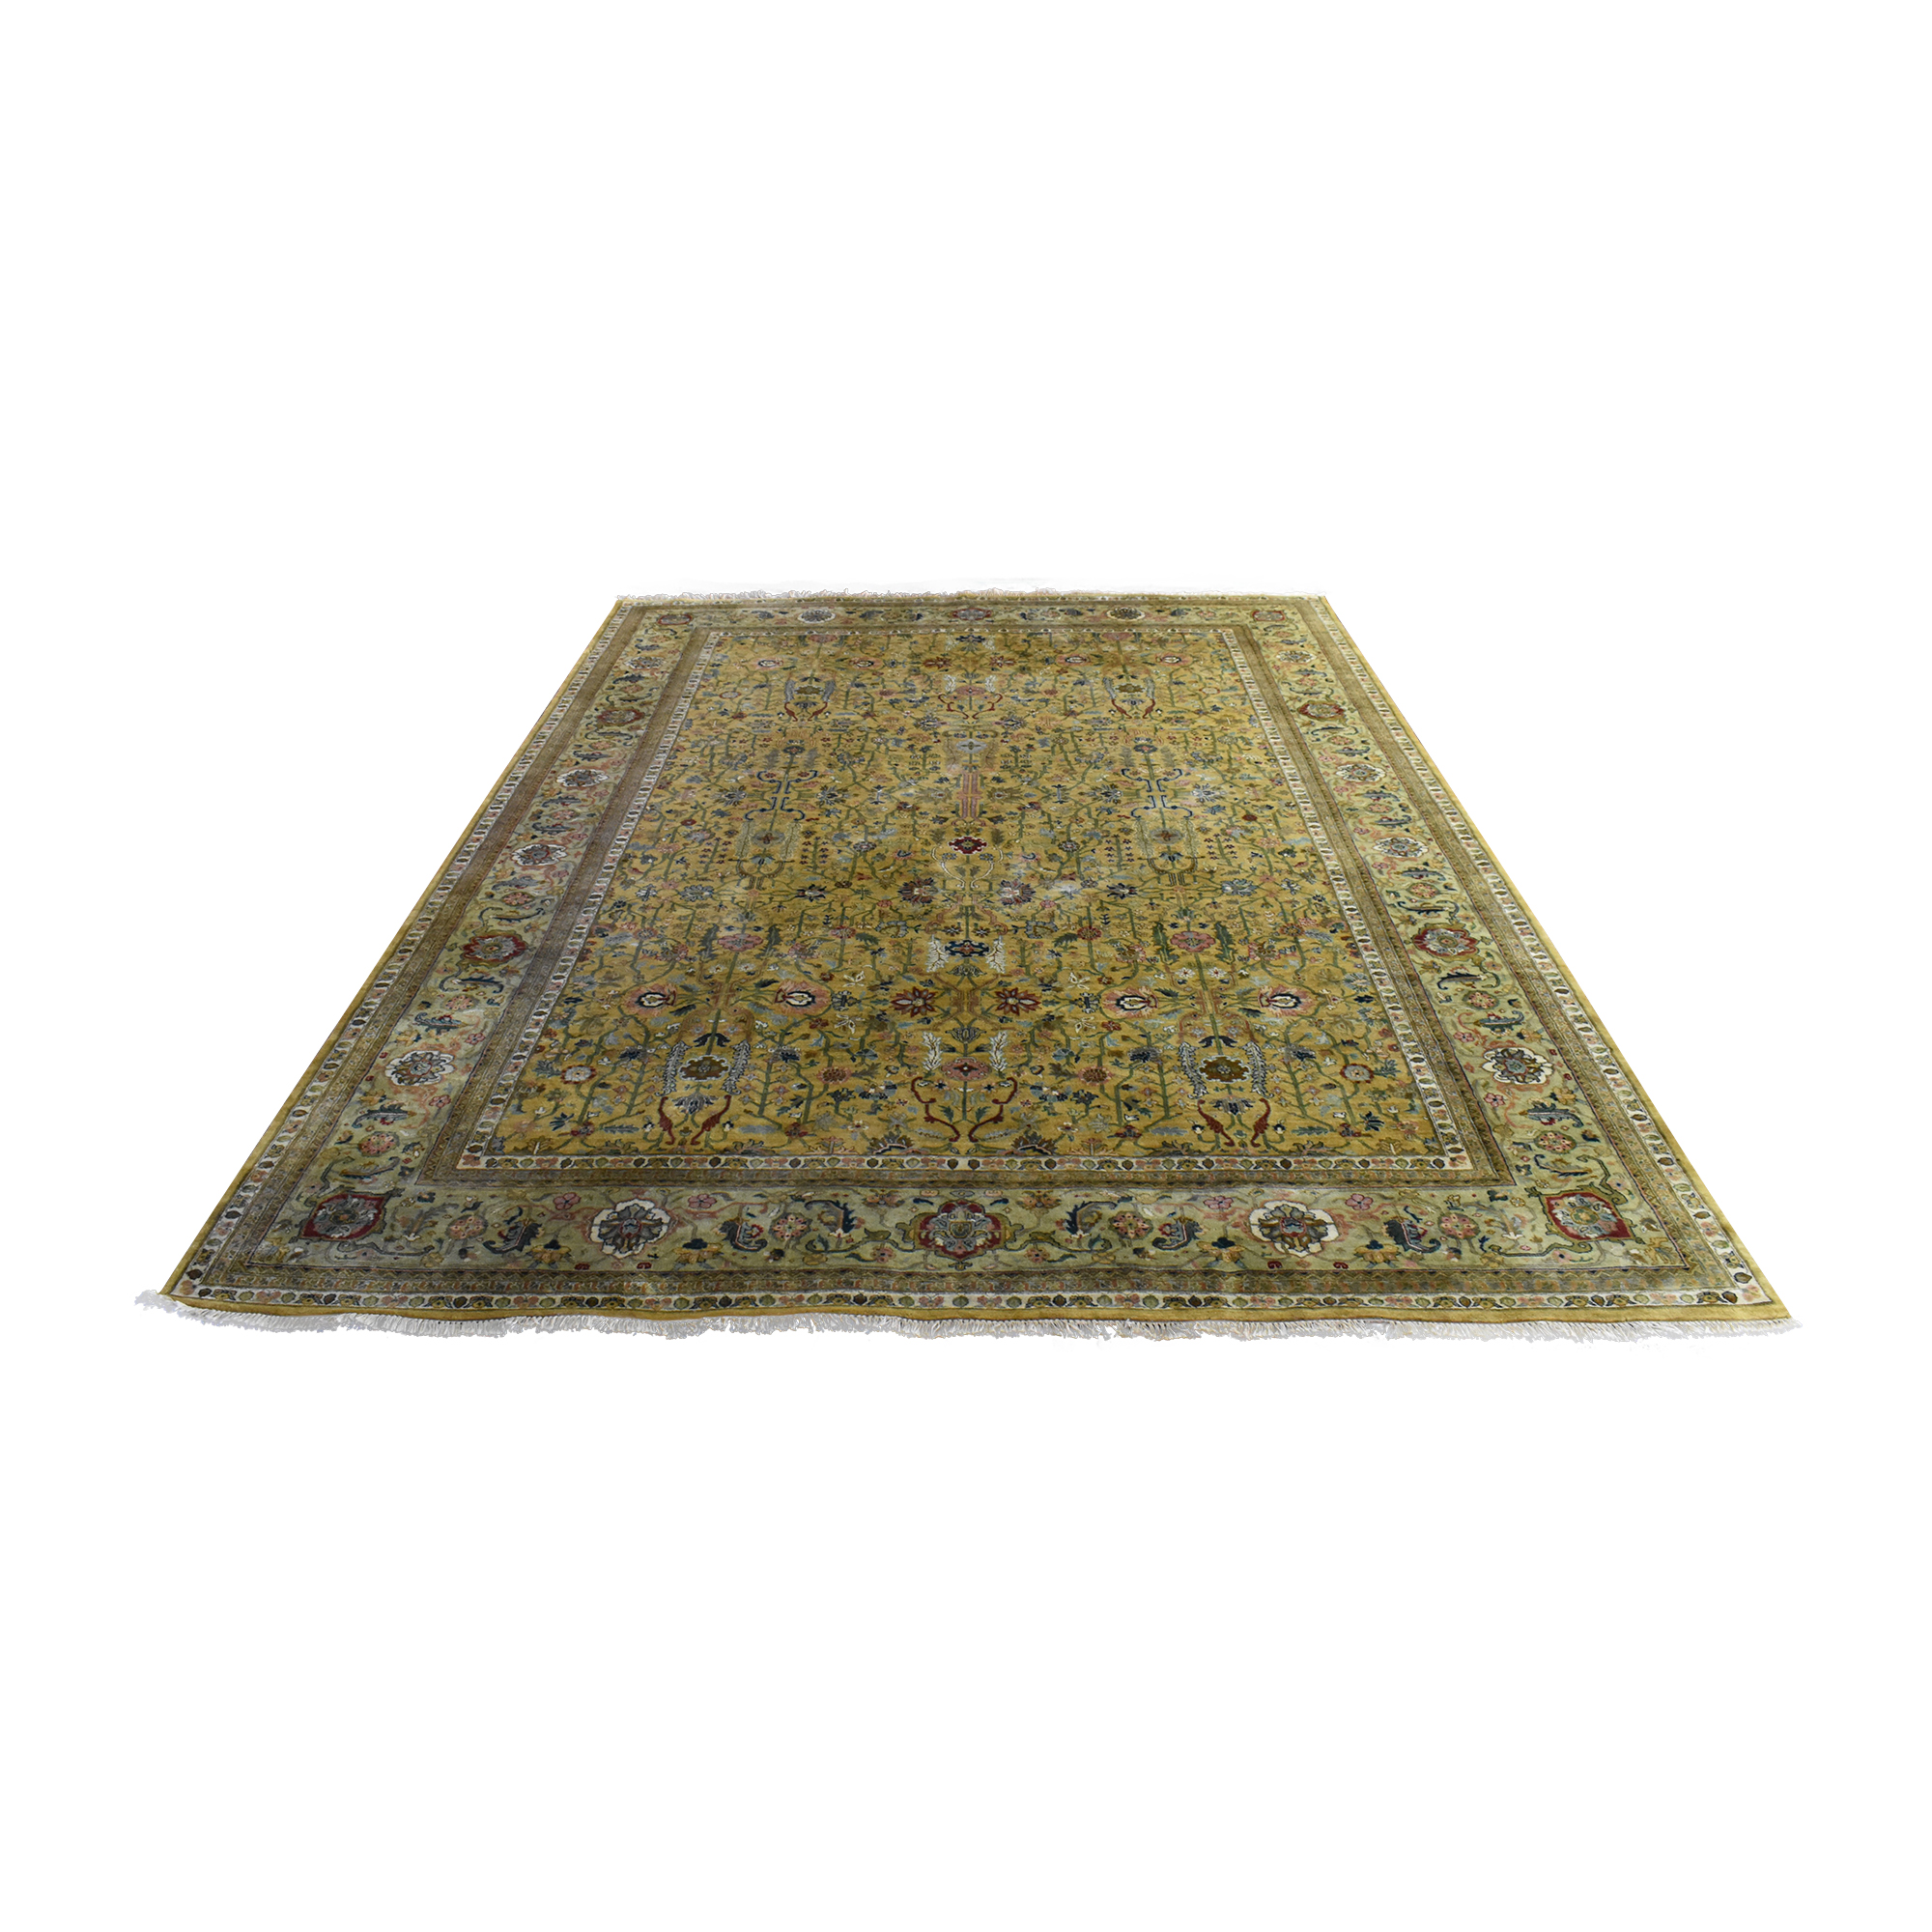 Samad Samad Golden Age Collection Brilliance Area Rug coupon